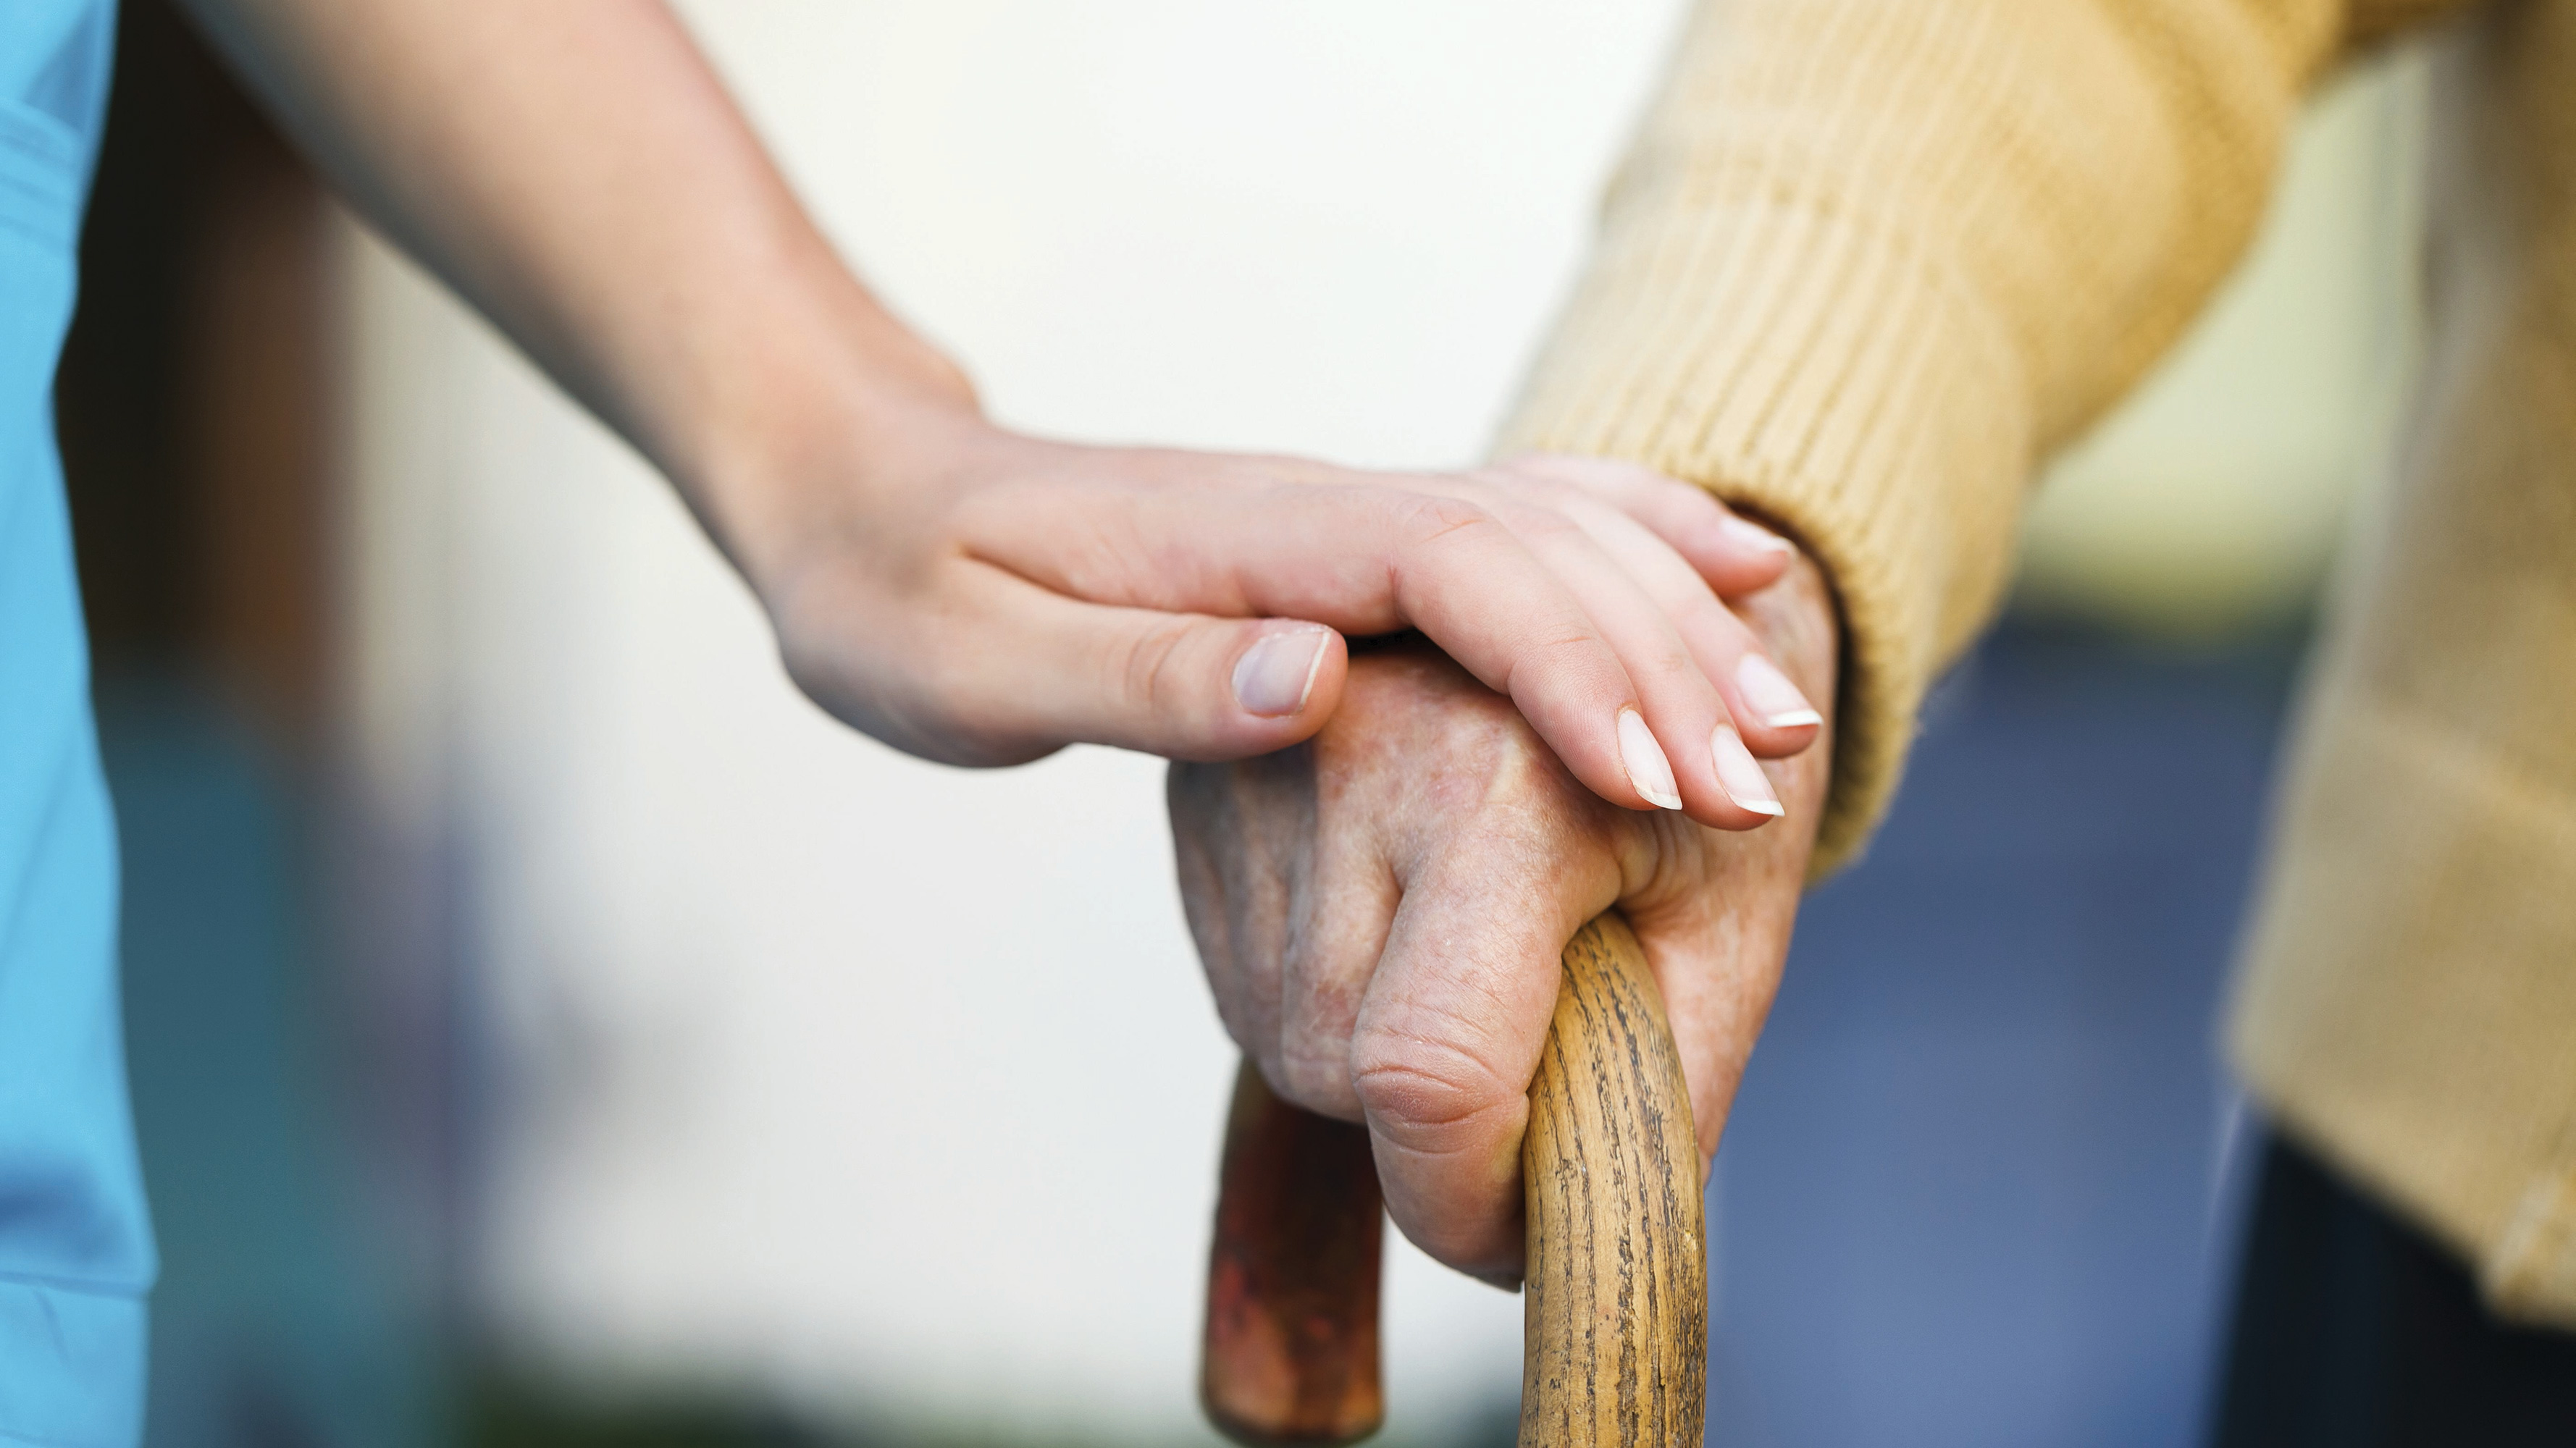 An elderly person's hand on a cane with a caregiver's hand on top in a reassuring gesture.